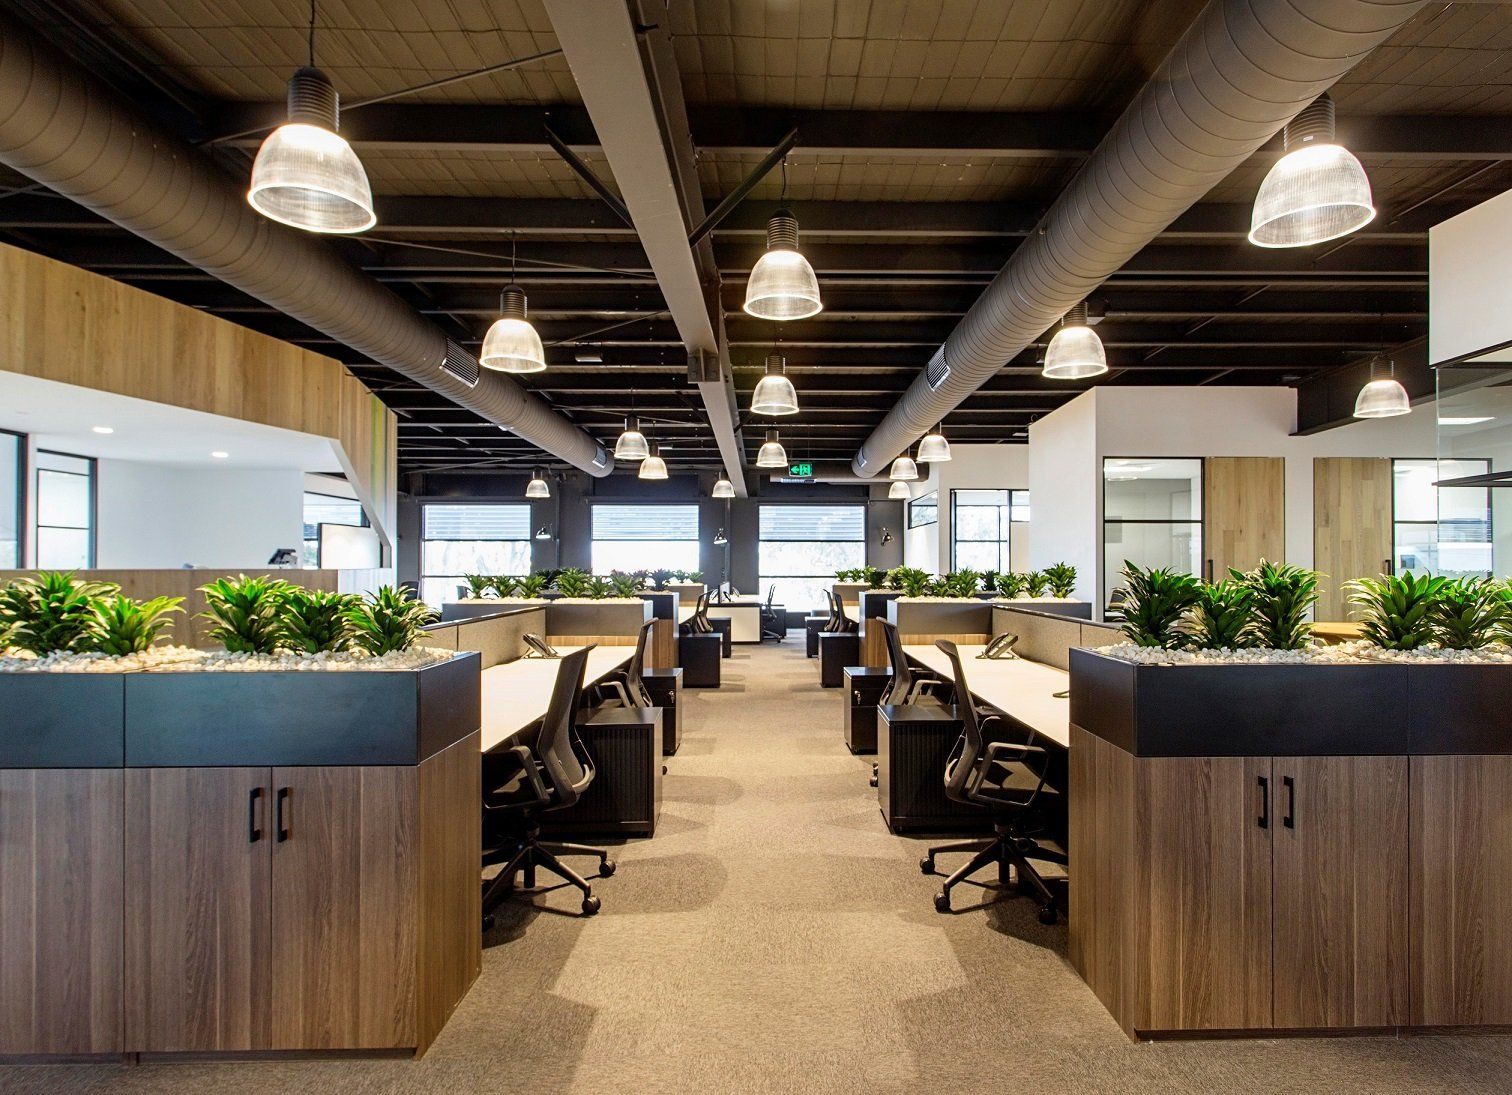 Corporate Office Design Ideas office charming office design ideas regarding office corporate lovely office design ideas Cameron Industrial Offices Melbourne Office Snapshots Corporate Offices Corporate Interiorsindustrial Office Designoffice Layoutsoffice Ideasdesign